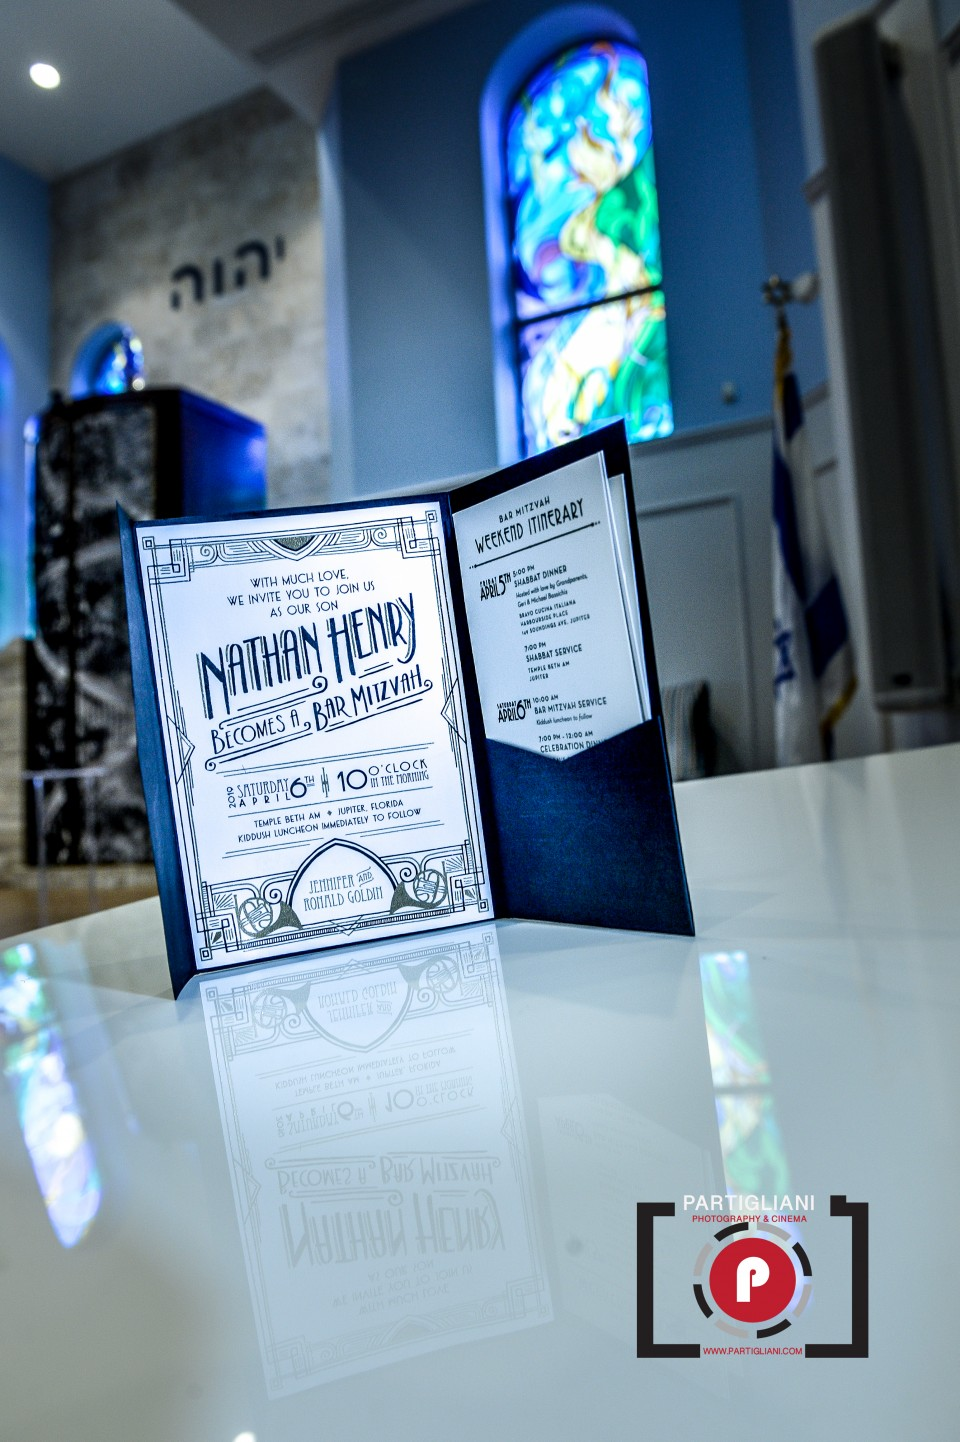 TEMPLE BETH AM, PARTIGLIANI PHOTOGRAPHY - NATHAN GOLDIN-19